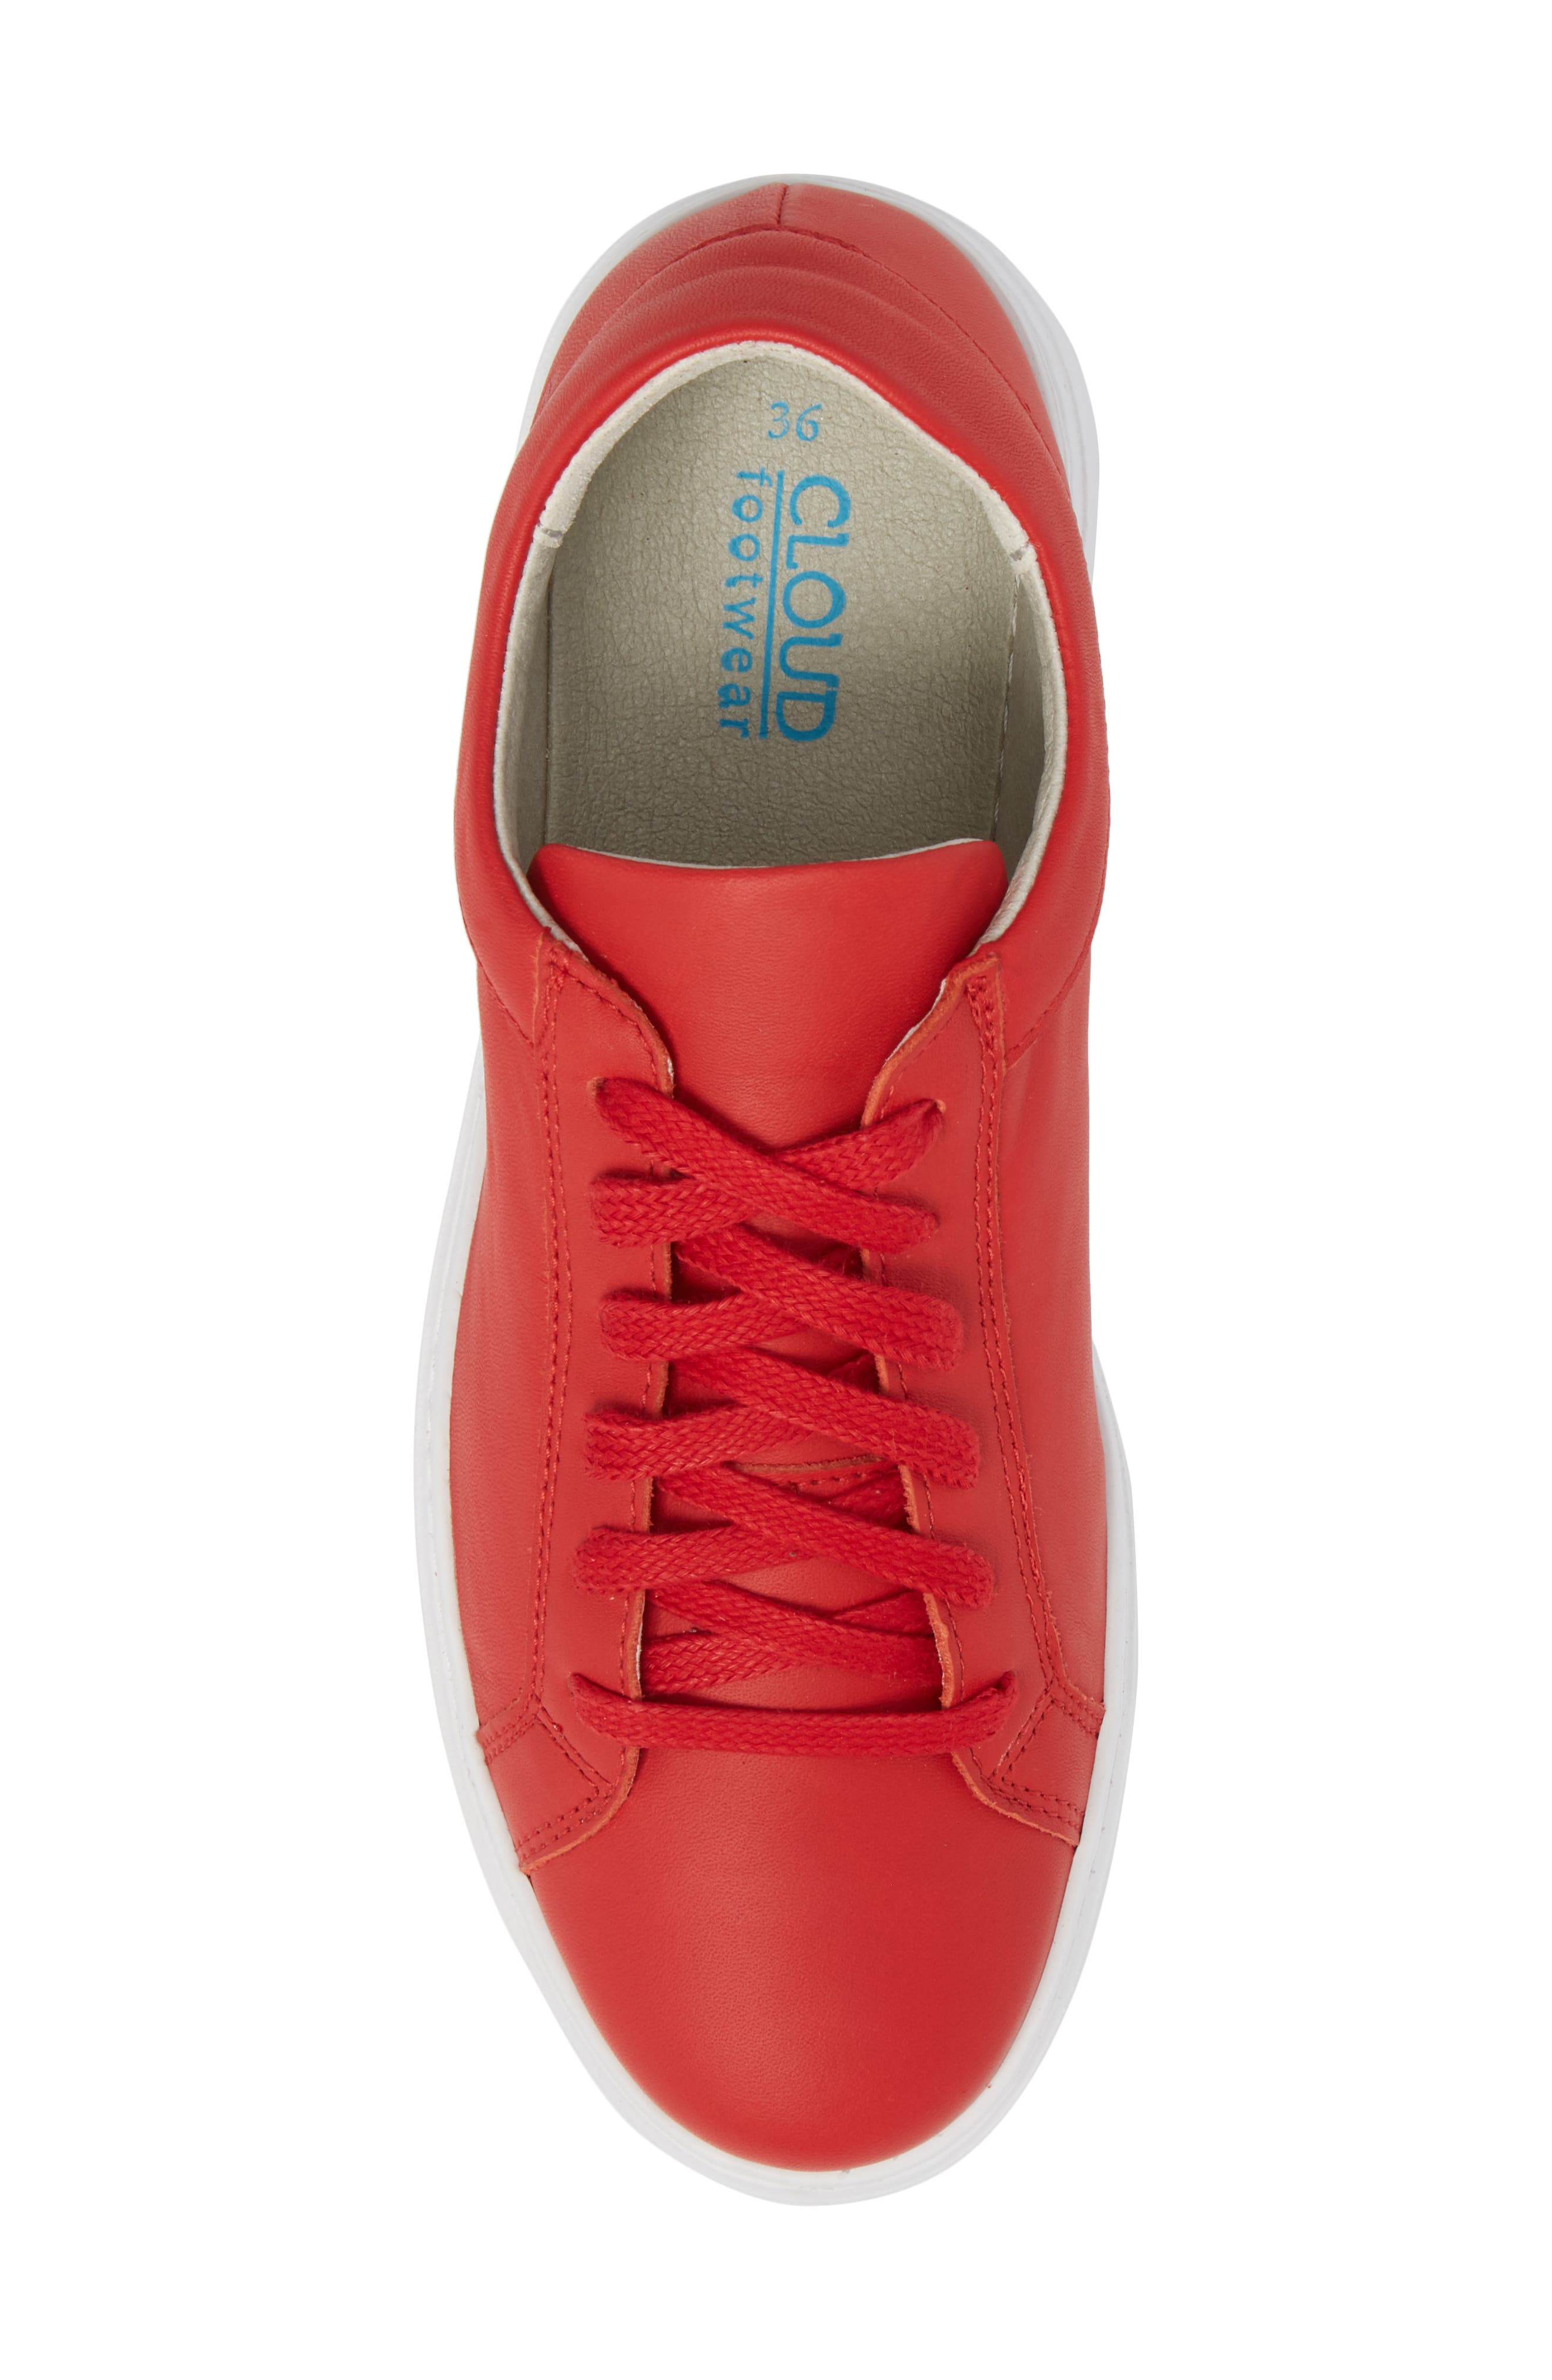 Tully Sneaker,                             Alternate thumbnail 5, color,                             Red Leather